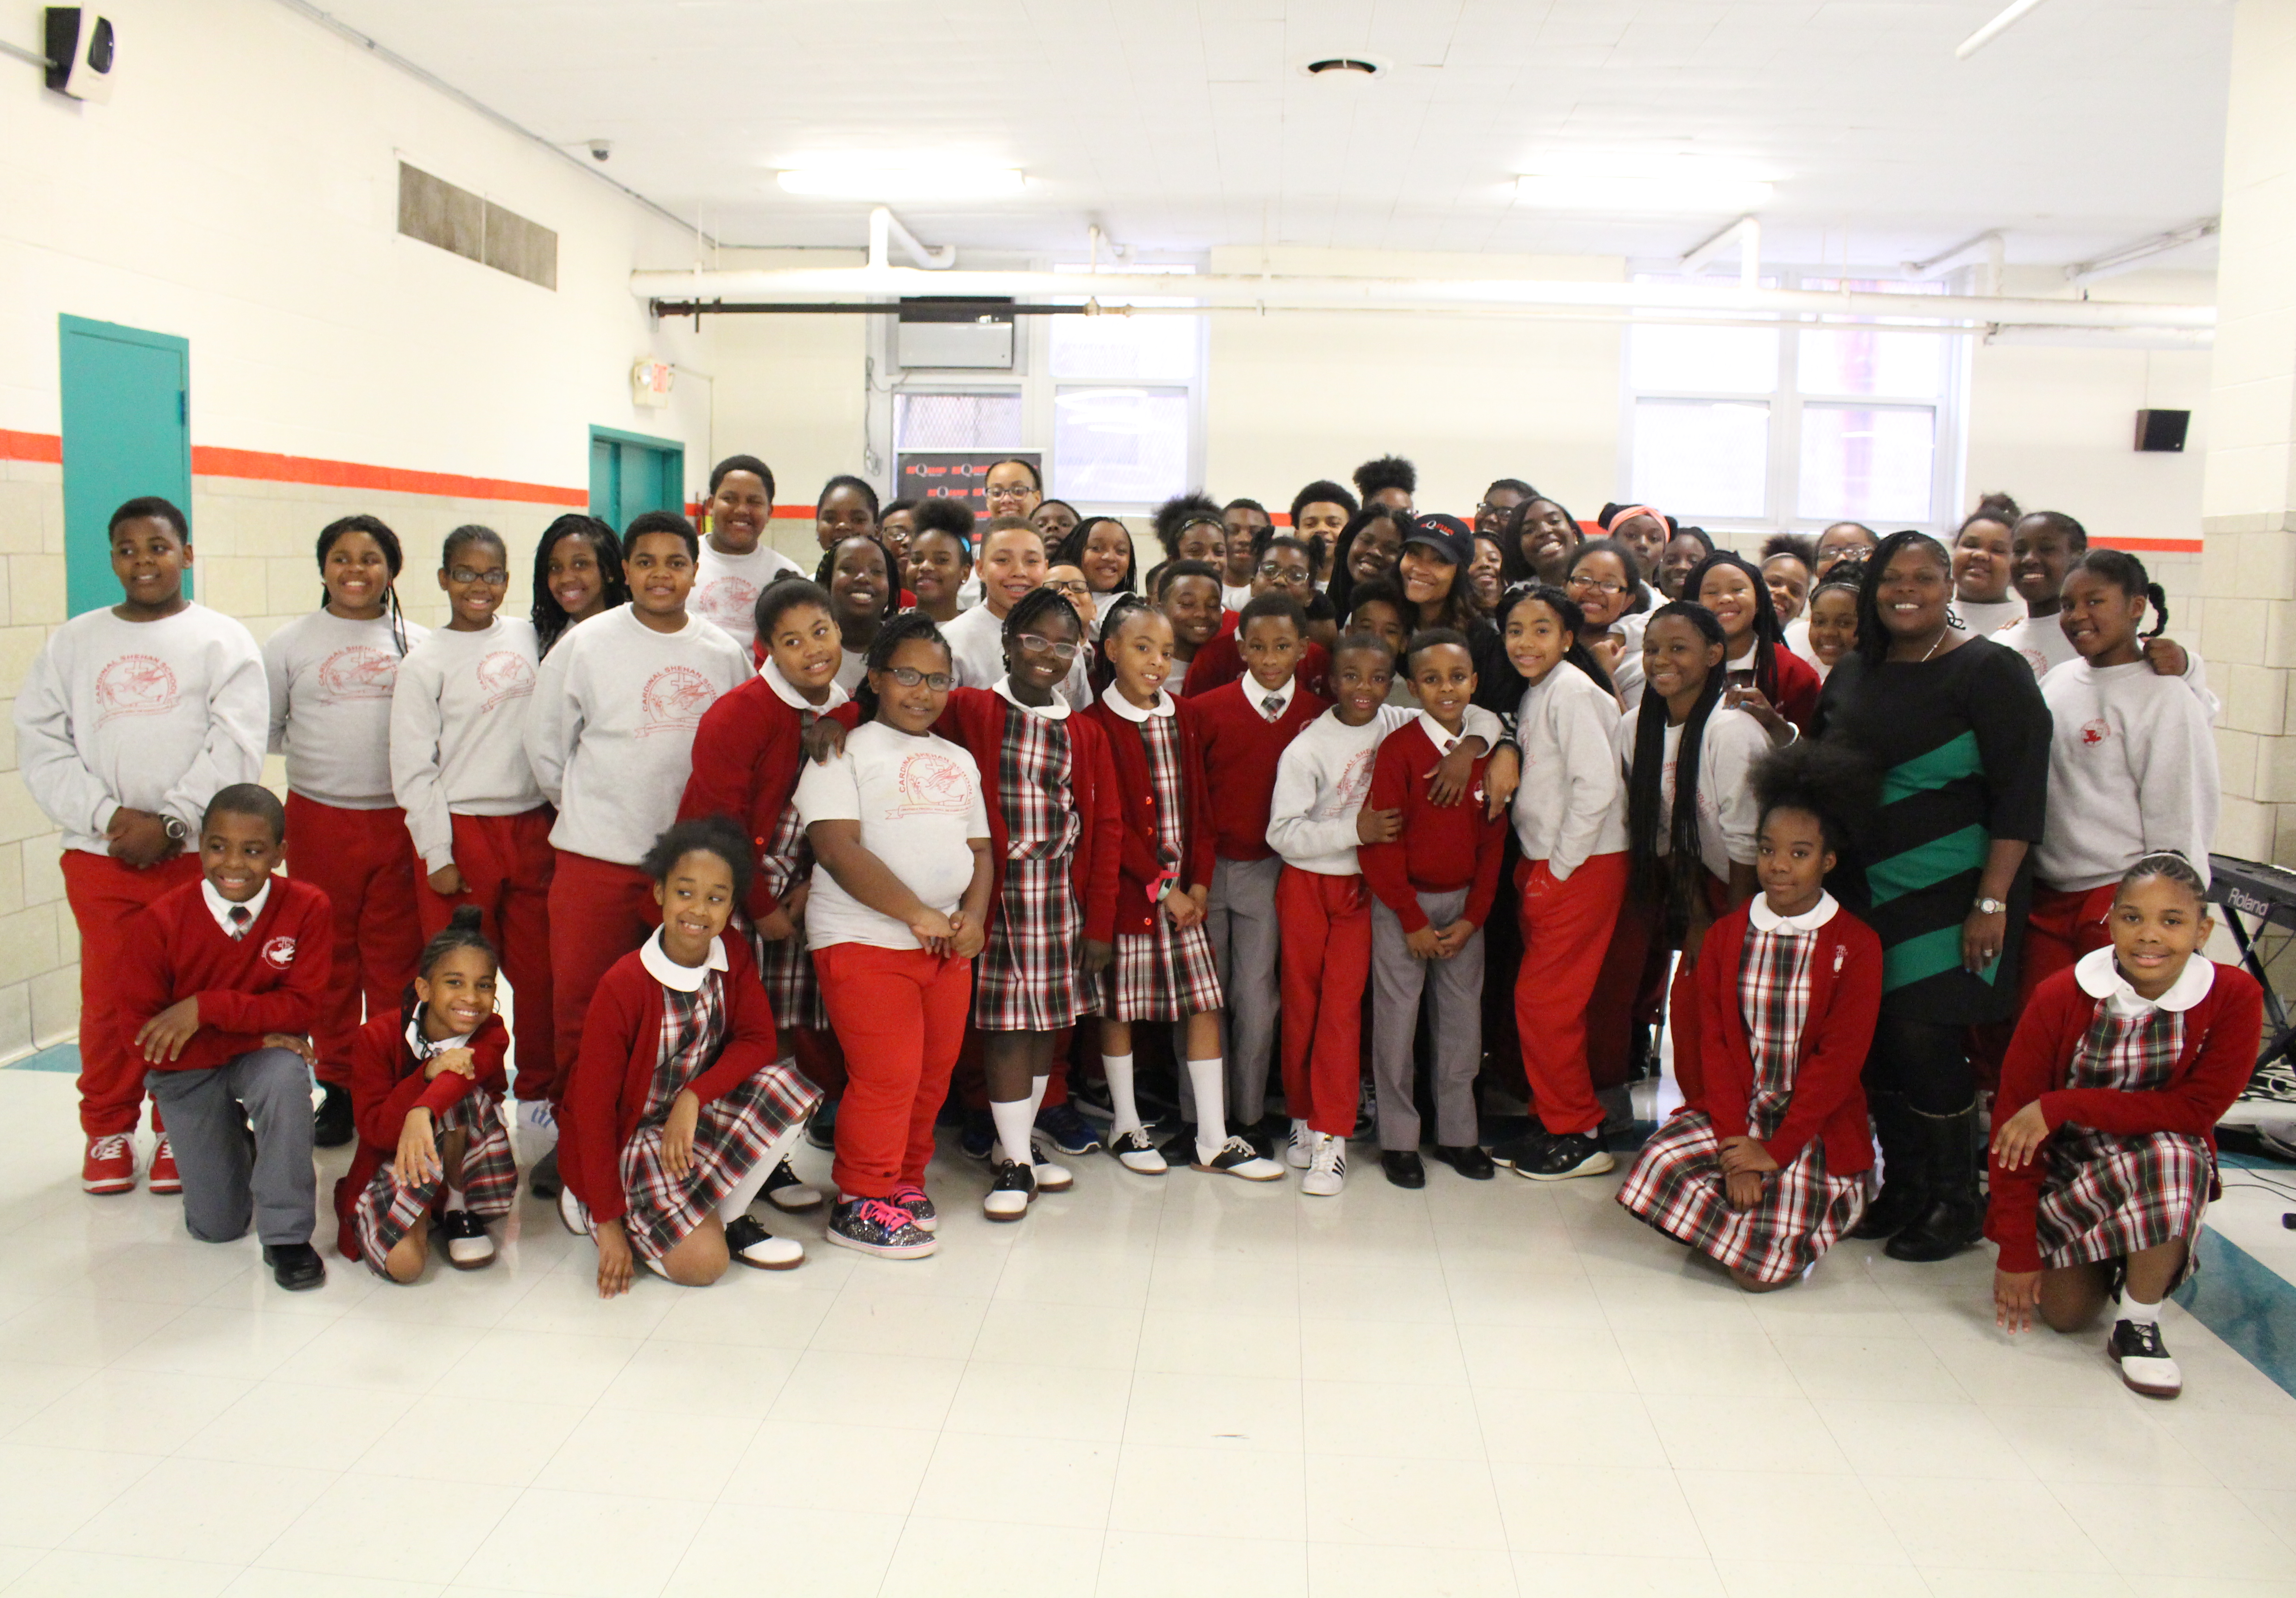 Baltimore's Cardinal Shenan School Choir & Persia Nicole